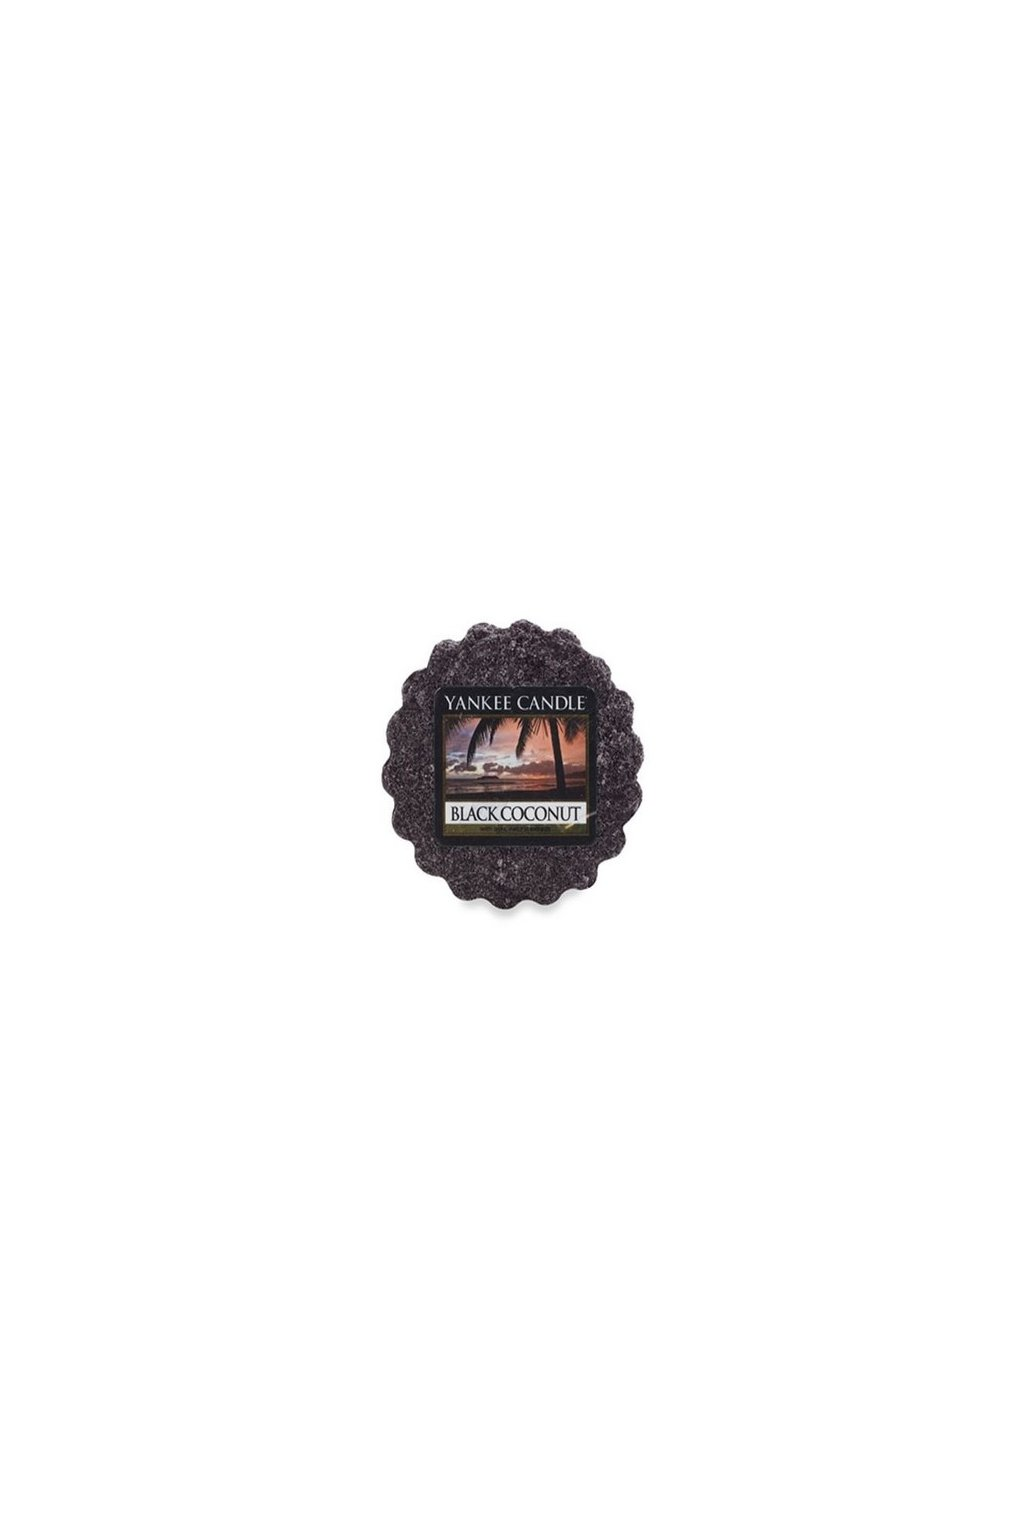 YANKEE CANDLE BLACK COCONUT 22g